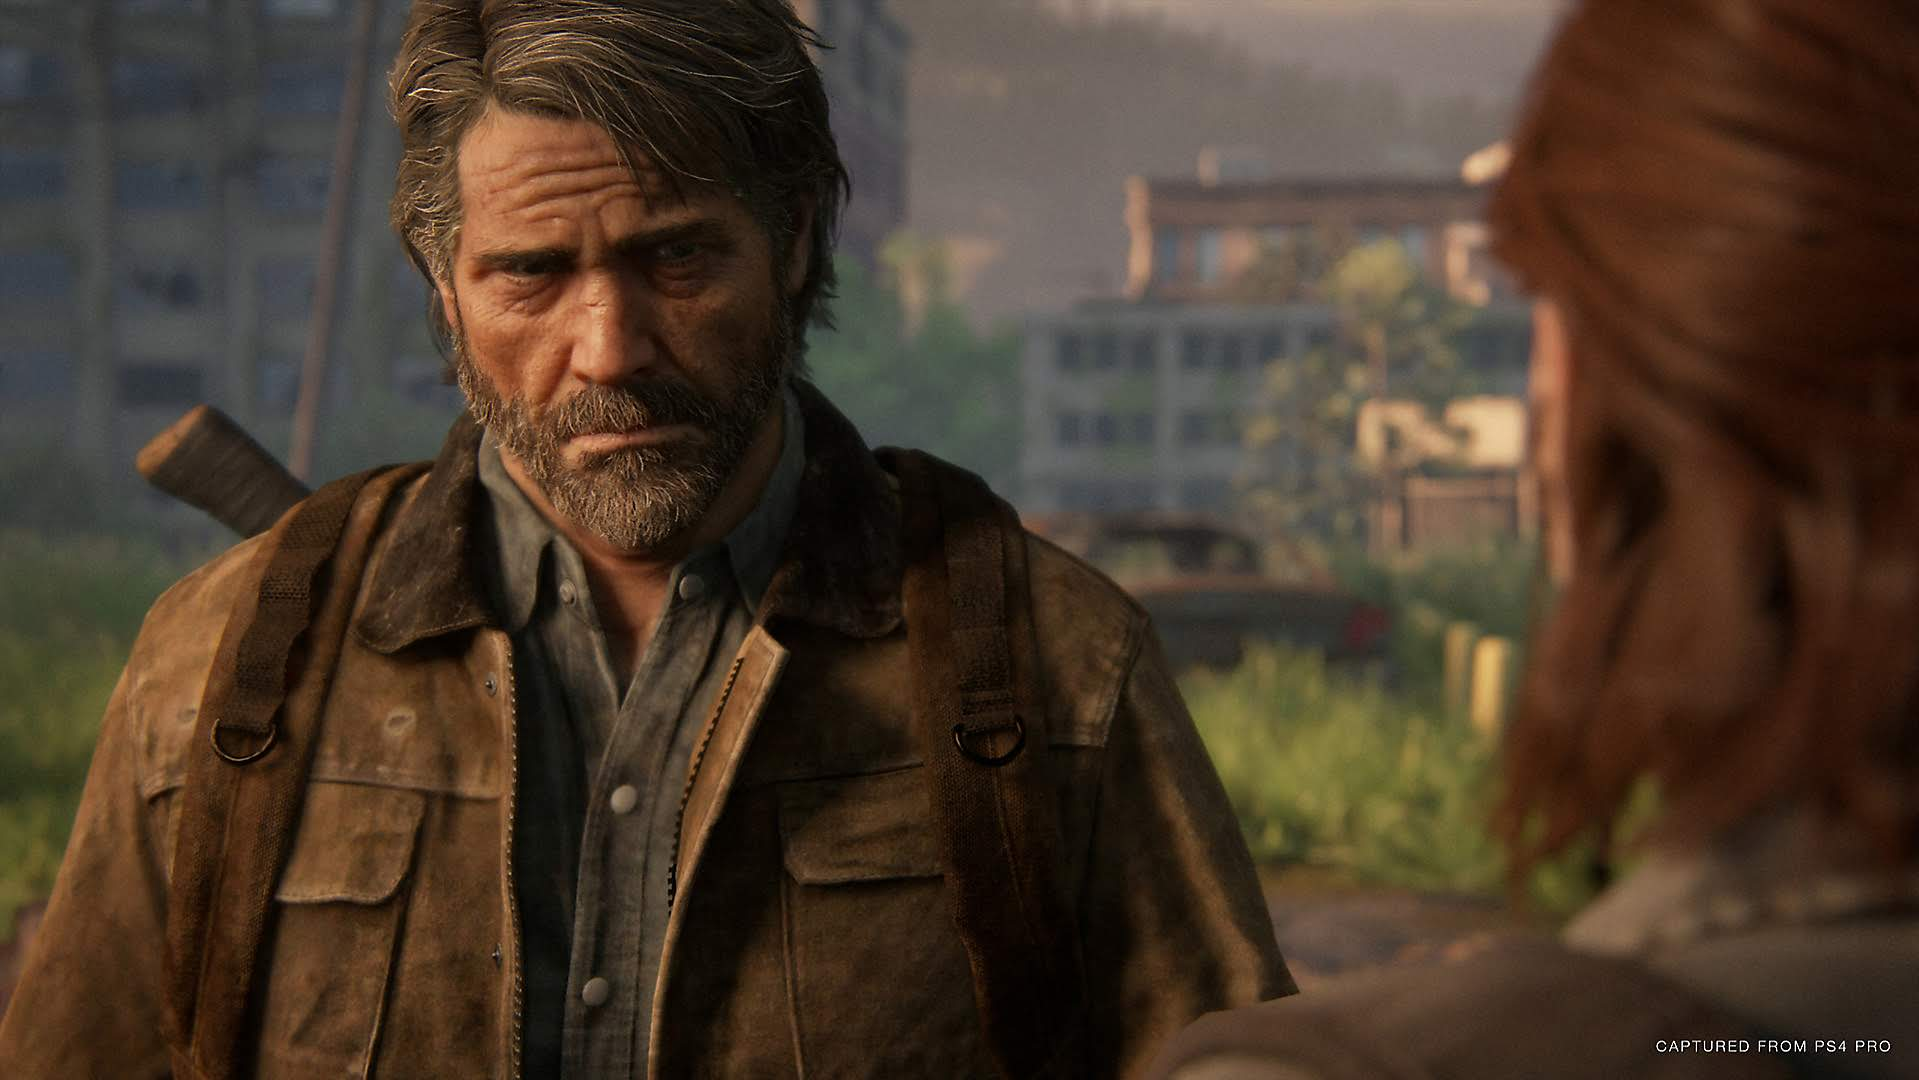 Joel and Ellie talk in The Last of Us Part 2, exclusively on PlayStation 4